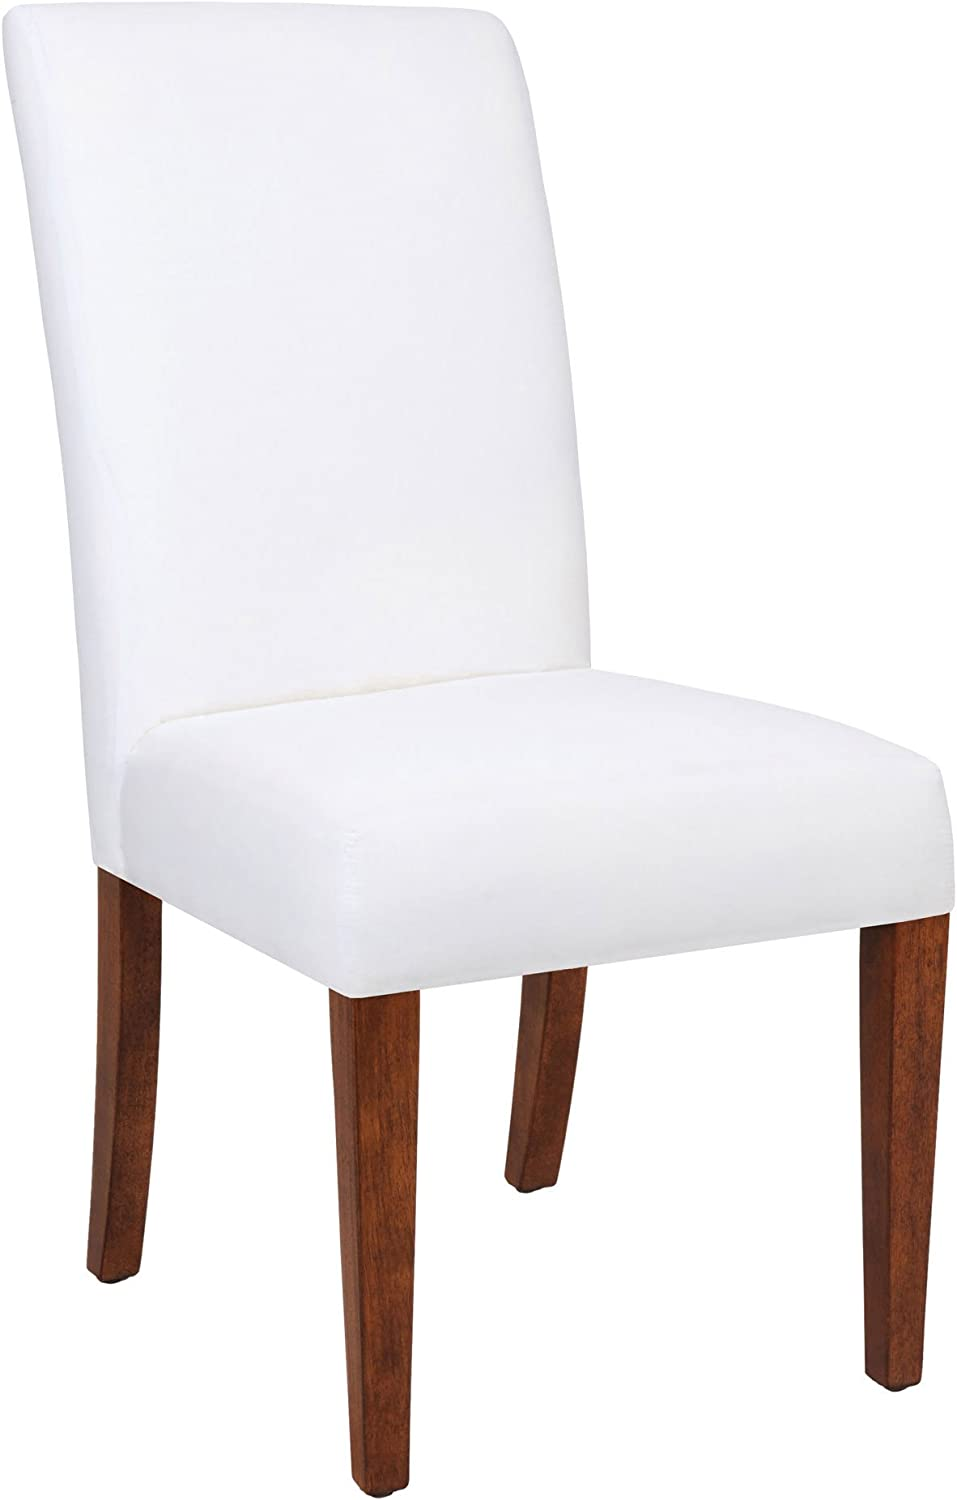 Sterling Couture Covers Plantation Grown Hardwoods/Imported Fabric Silhouette Parsons Chair, 40-Inch, Cherry